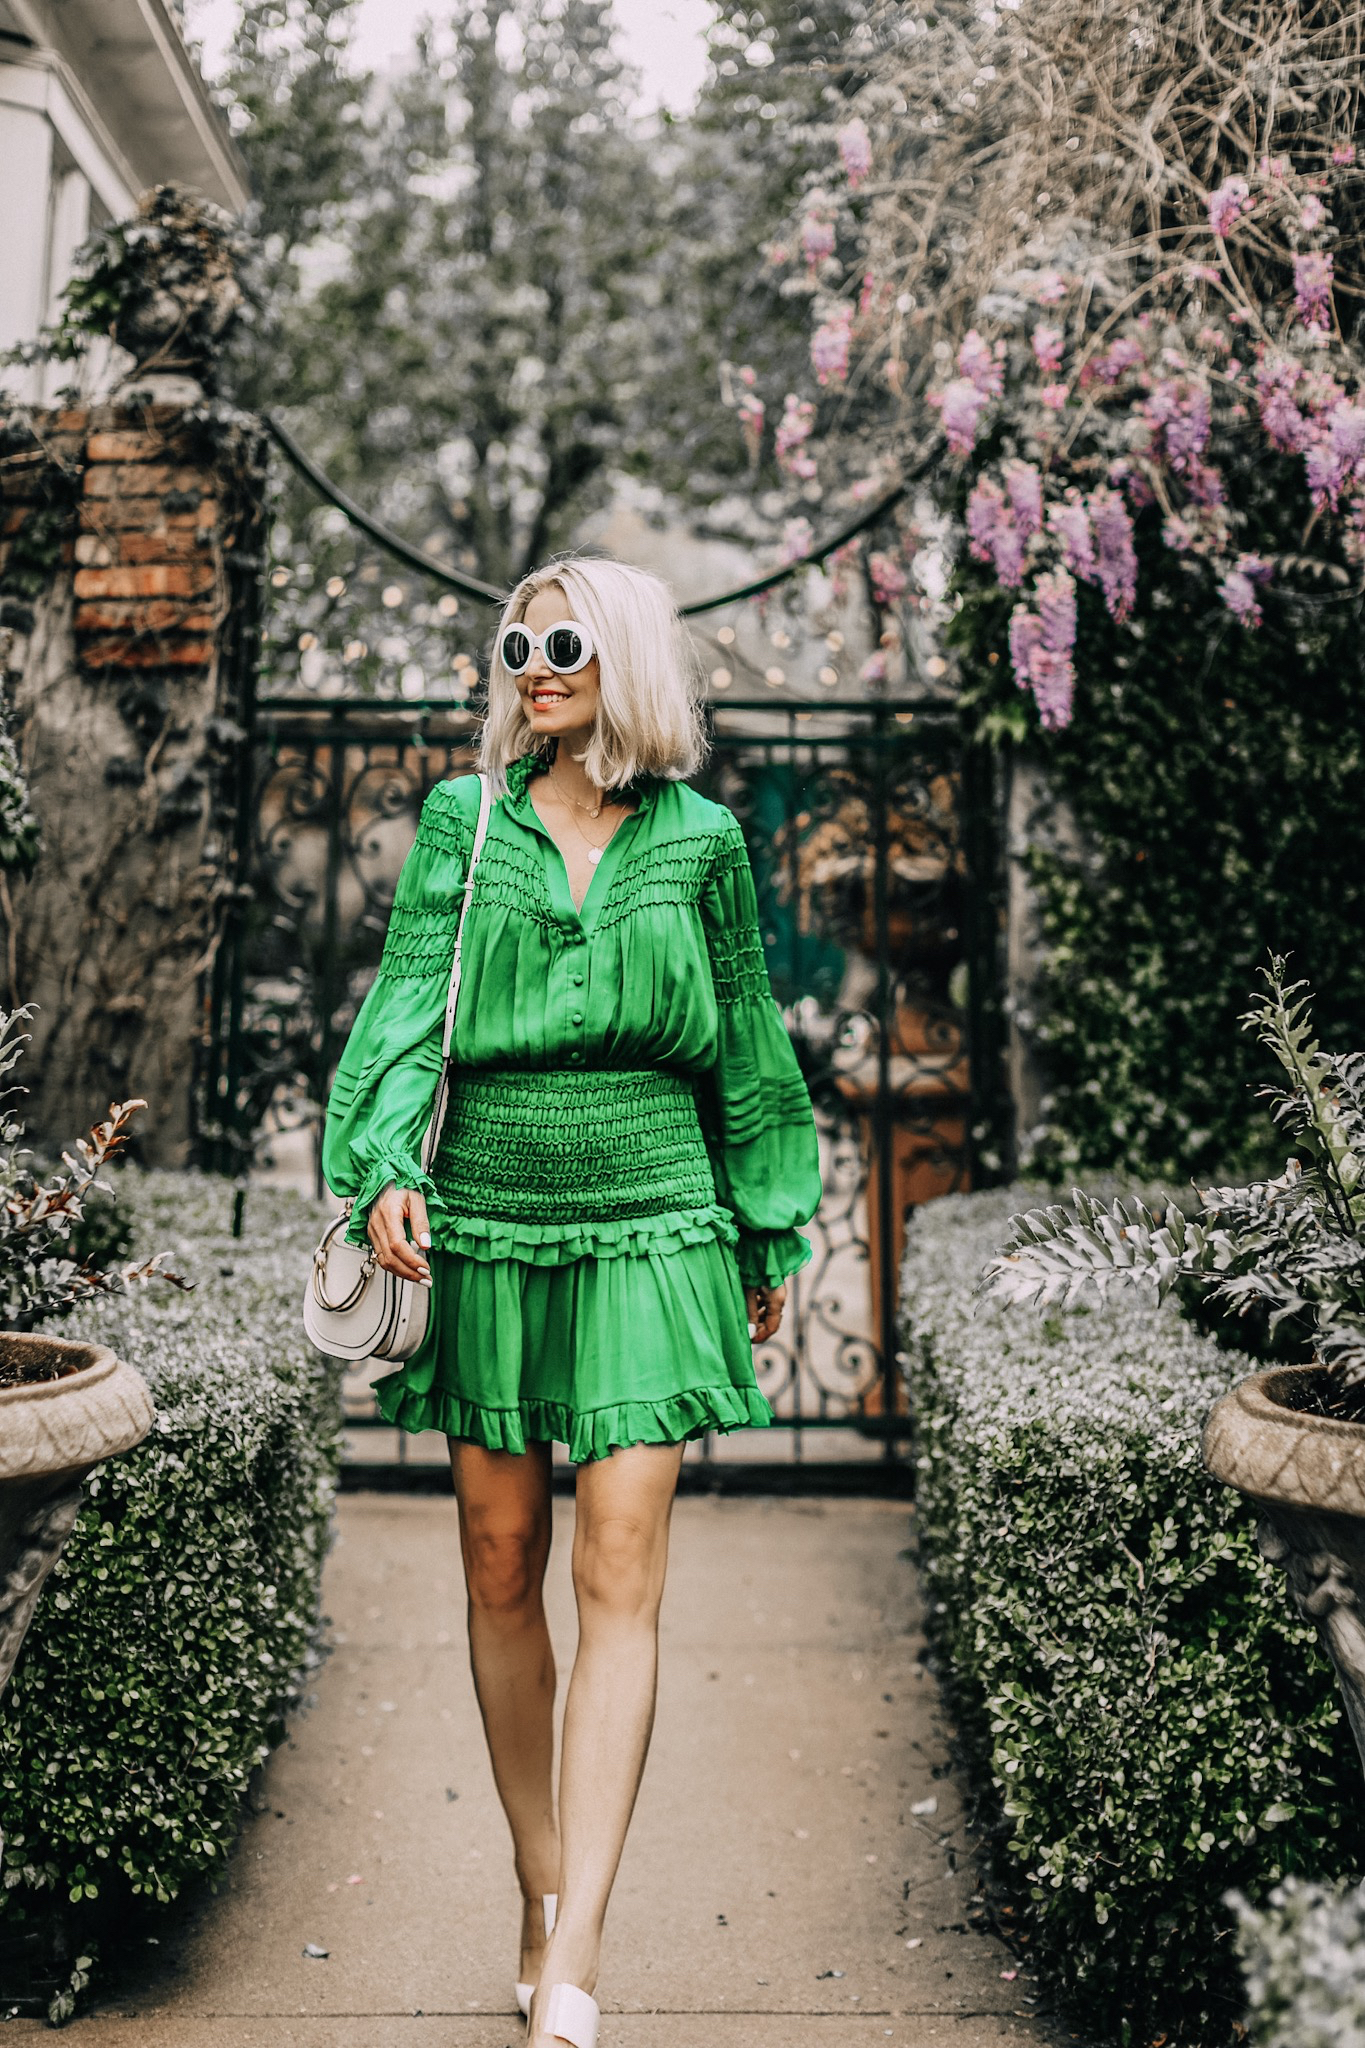 Green dress by Alexis on fashion over 40 blogger Erin Busbee